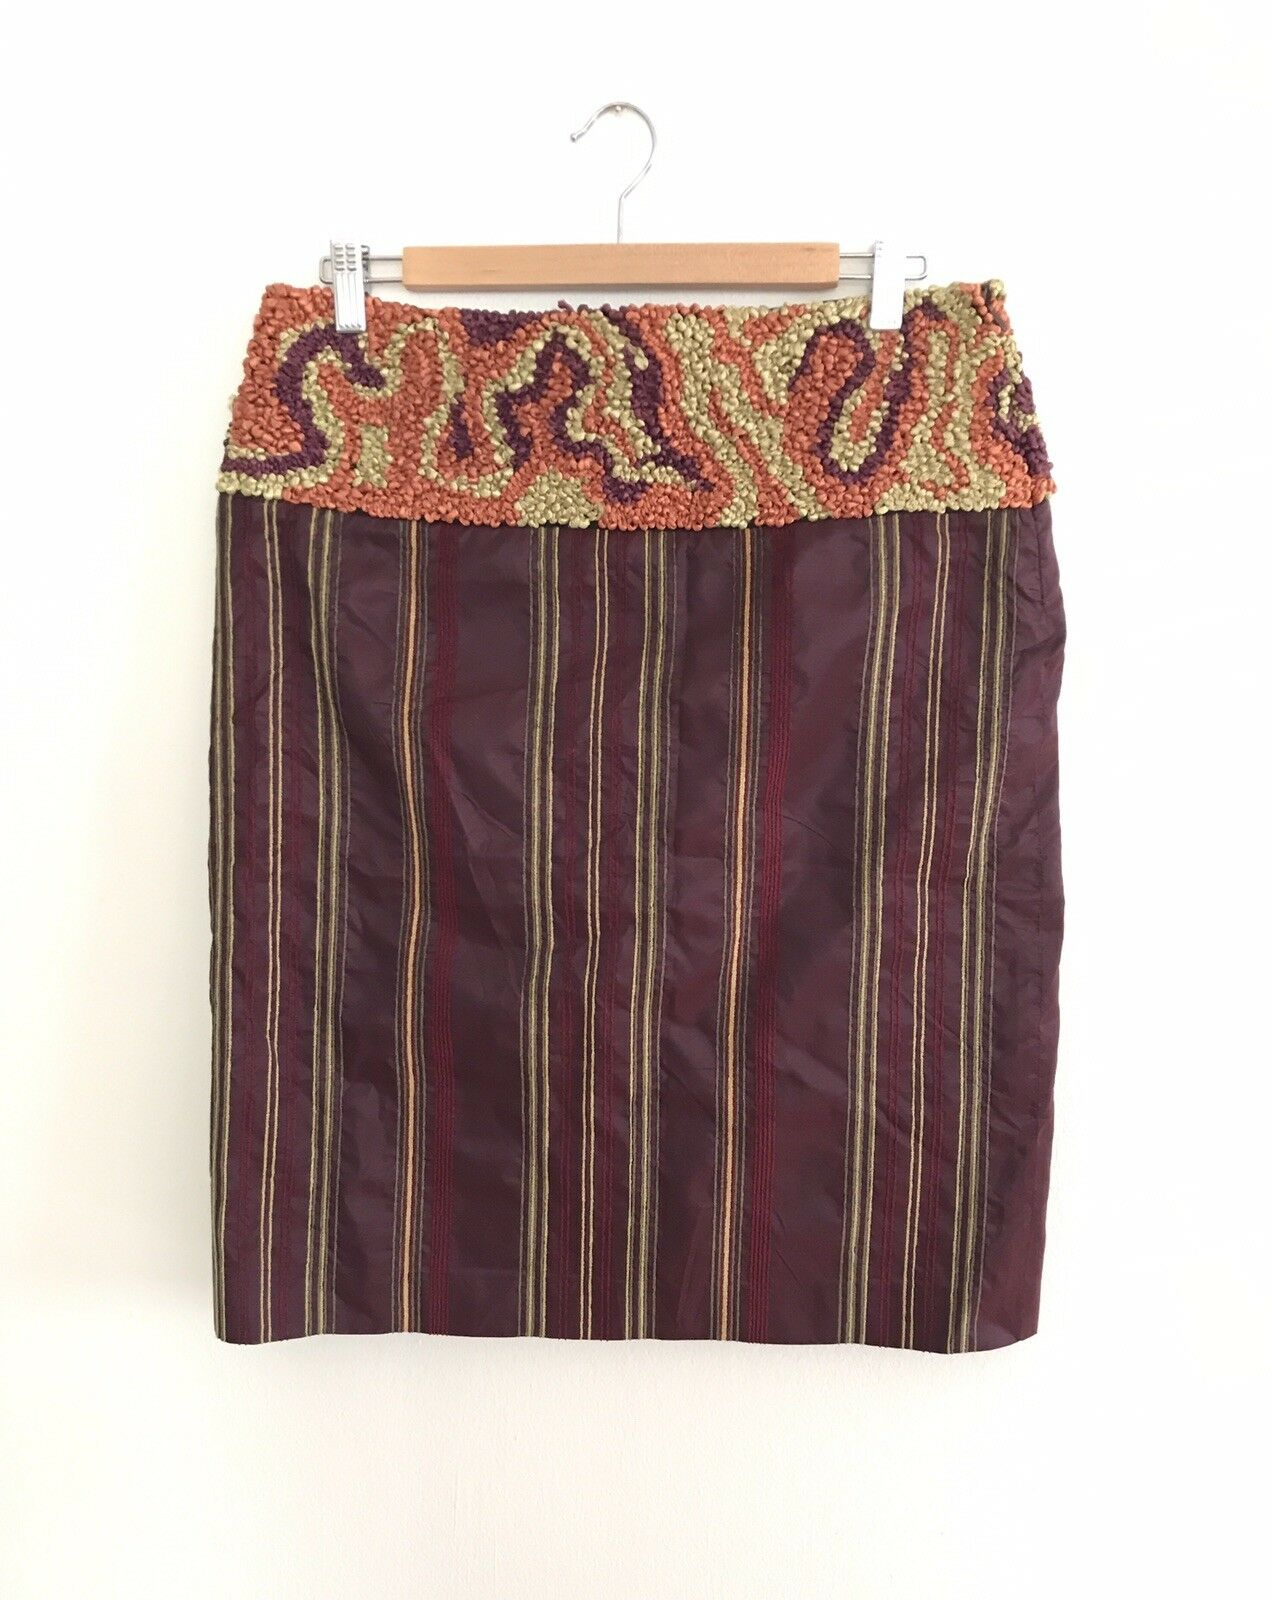 Etro silk hand embroidered skirt